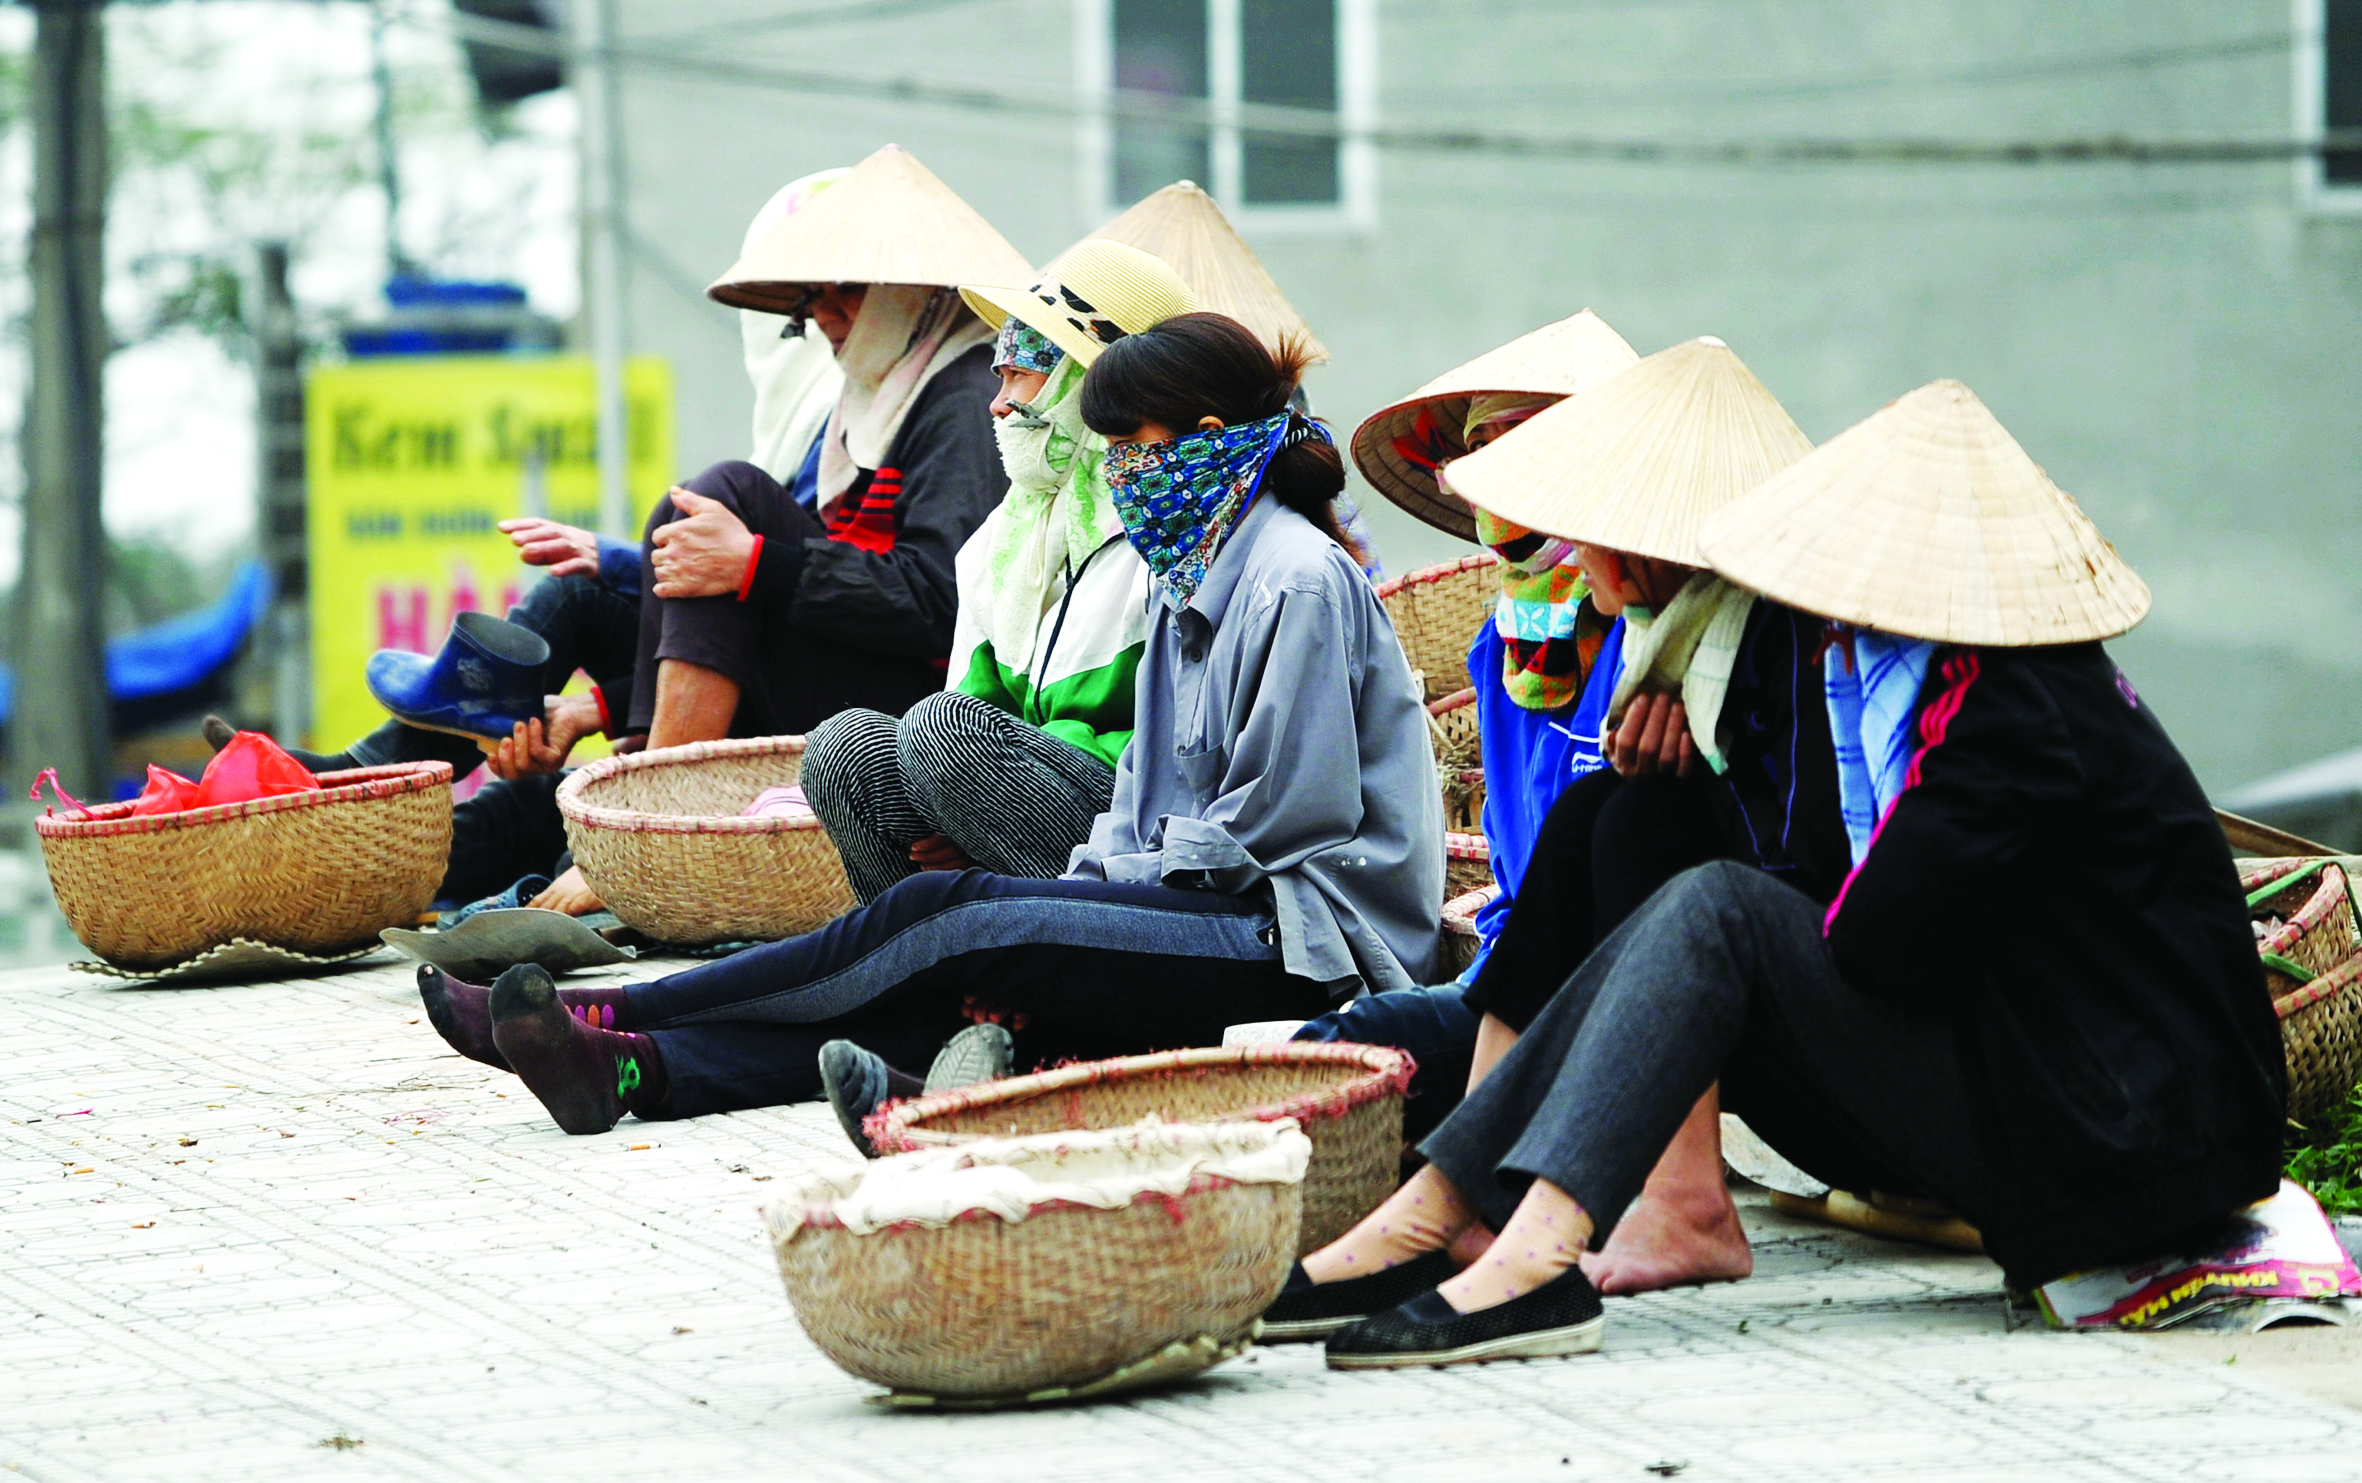 Day-labourers sit waiting for employers to hire them for the day, along a road in Hanoi on March 28, 2016. Vietnam's economy slowed in the first quarter of 2016, official figures shows on March 25, hampered by low oil prices and an ongoing drought that has hit the agricultural sector hard.  / AFP PHOTO / HOANG DINH NAM